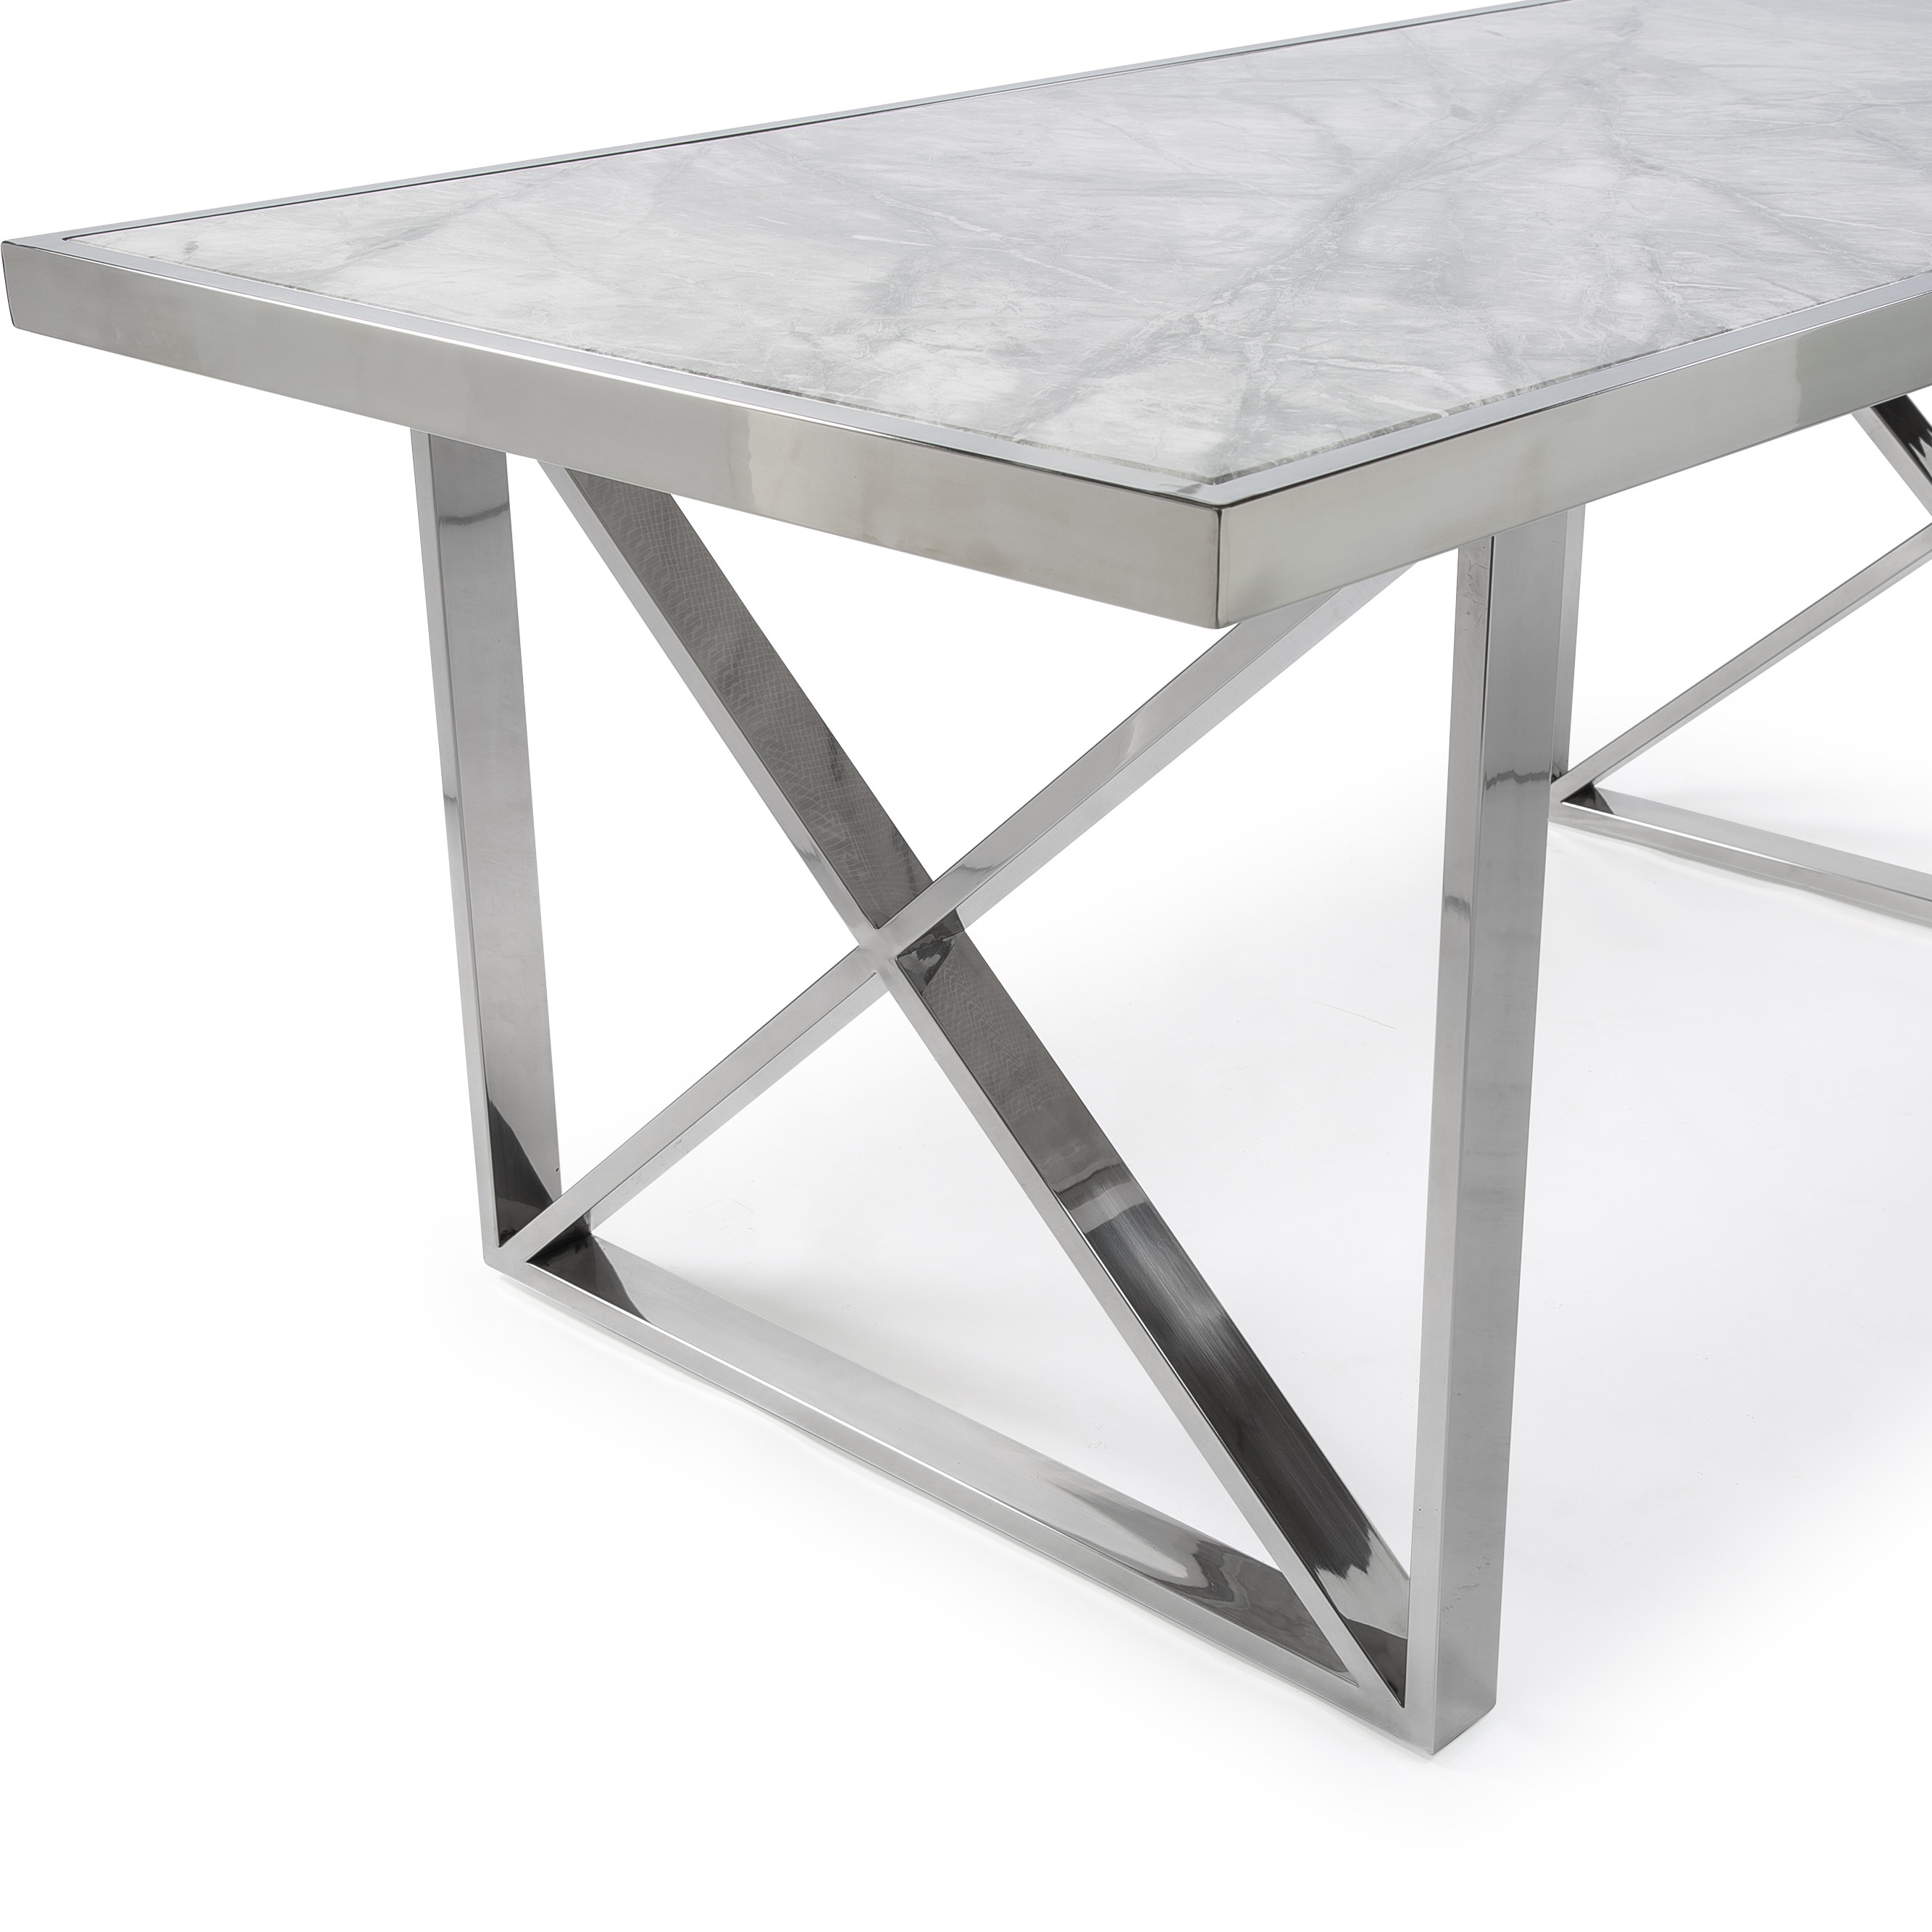 1.8M Tuscany Grey Marble Dining Table with a Polished Steel Cross Structure Base